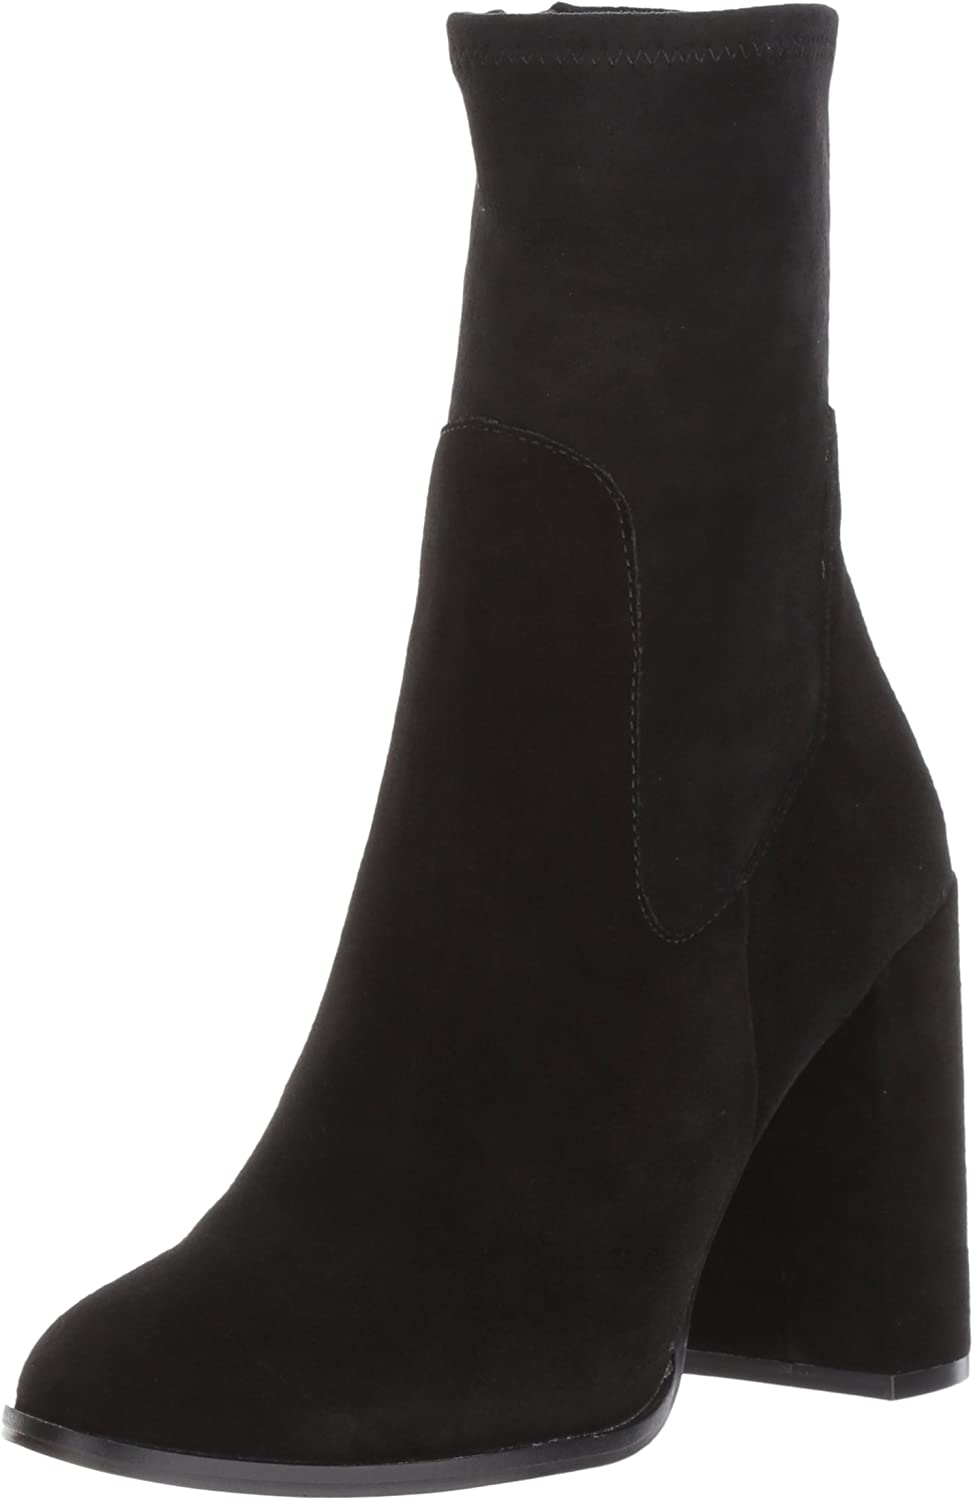 Chinese Laundry Women's Charisma Boot